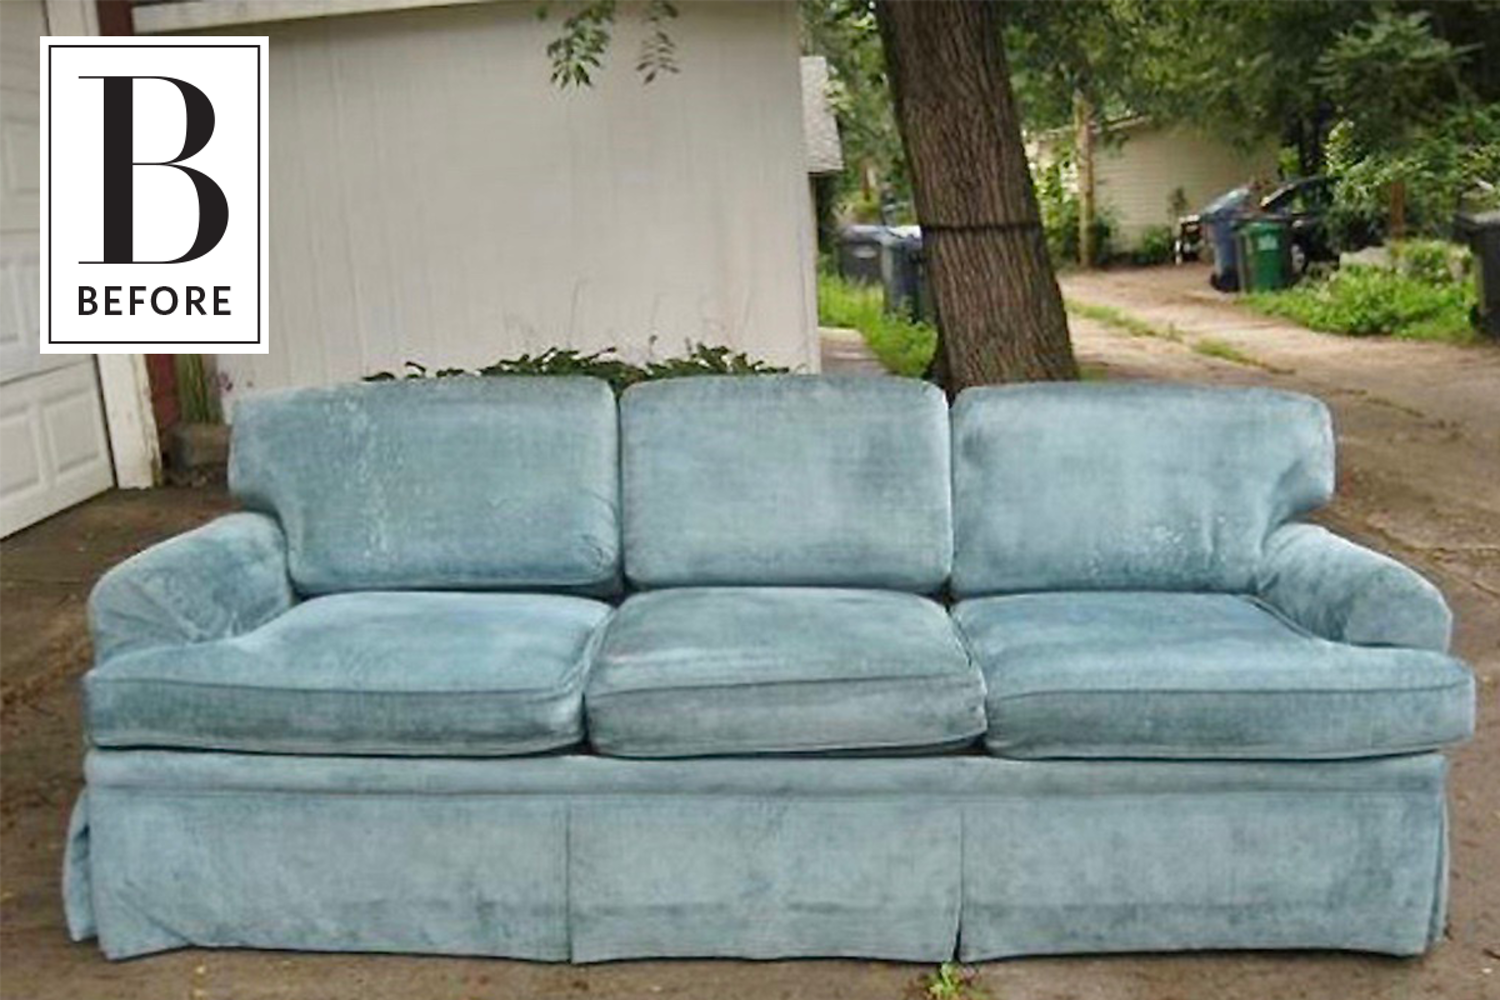 Before After An 80 Sofa Gets An Affordable And Easy Refresh Chenille Sofa Sofa Makeover Couch Makeover